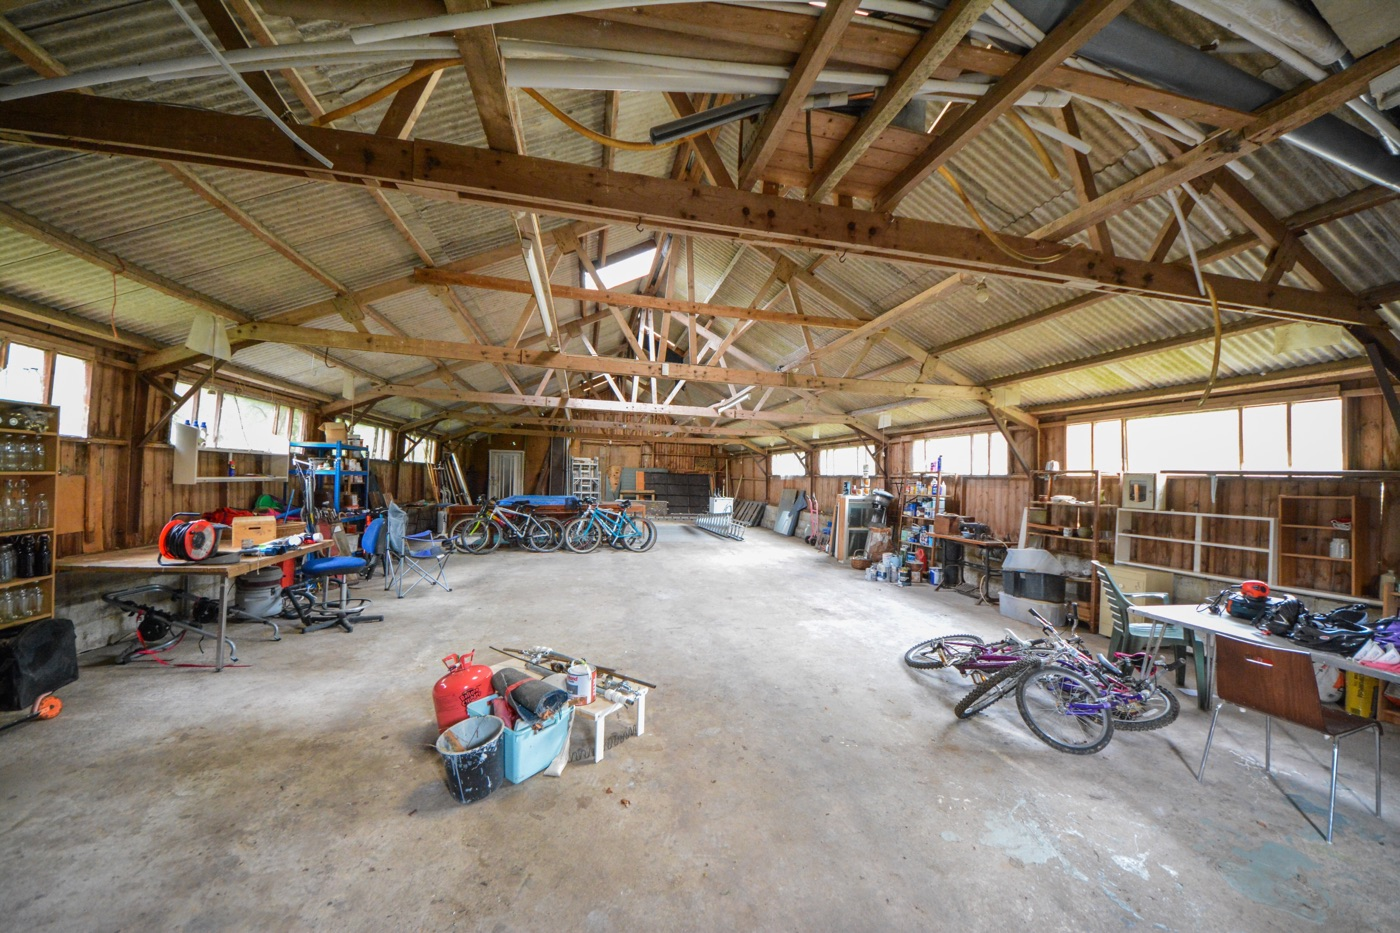 Barn available for set building and storage